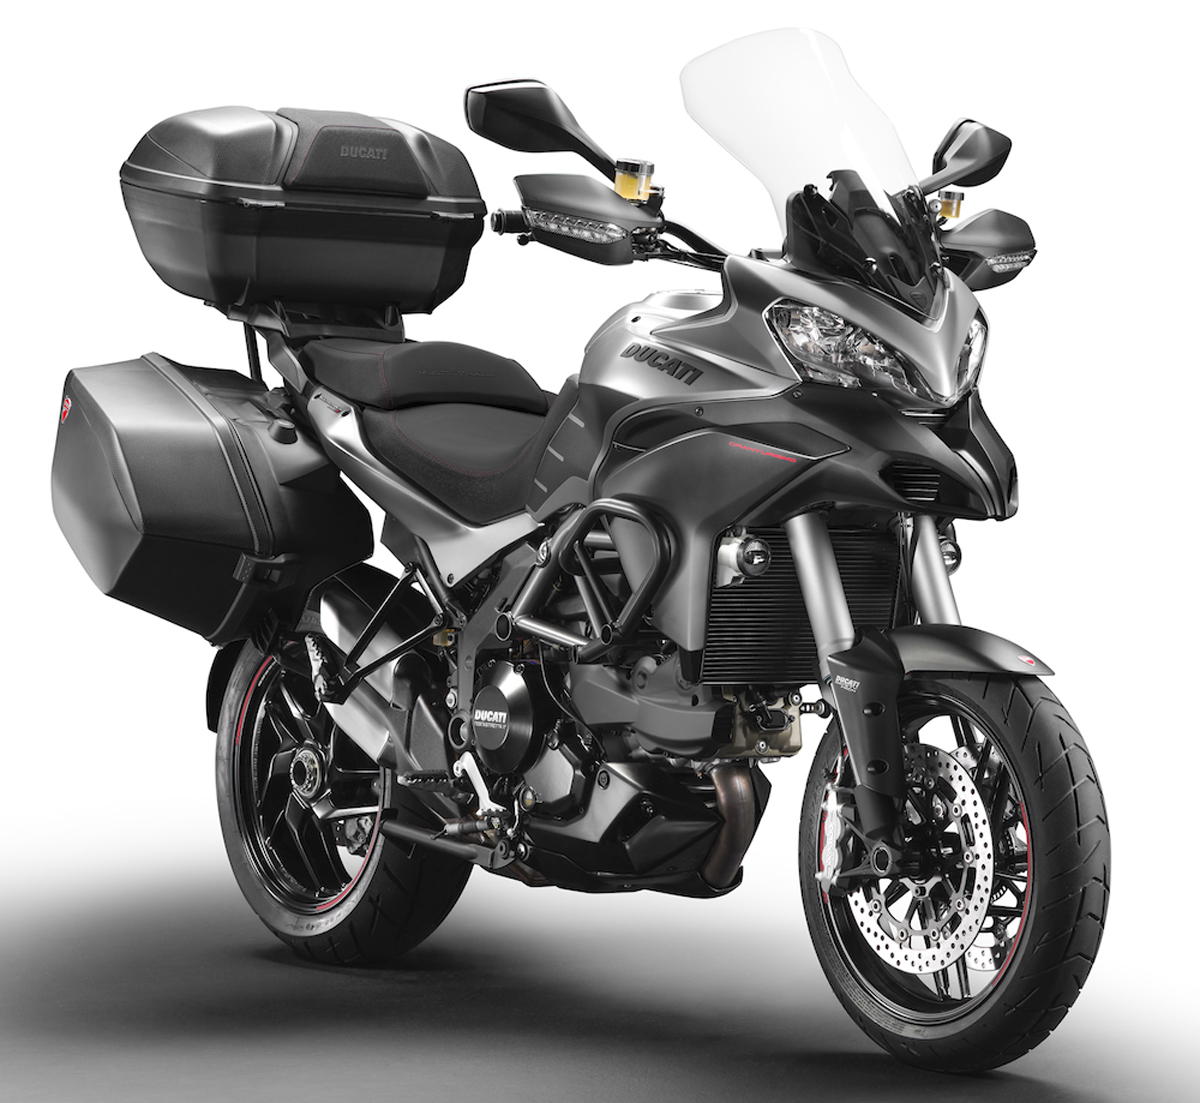 testing the 2013 ducati multistrada (and how it compares to the